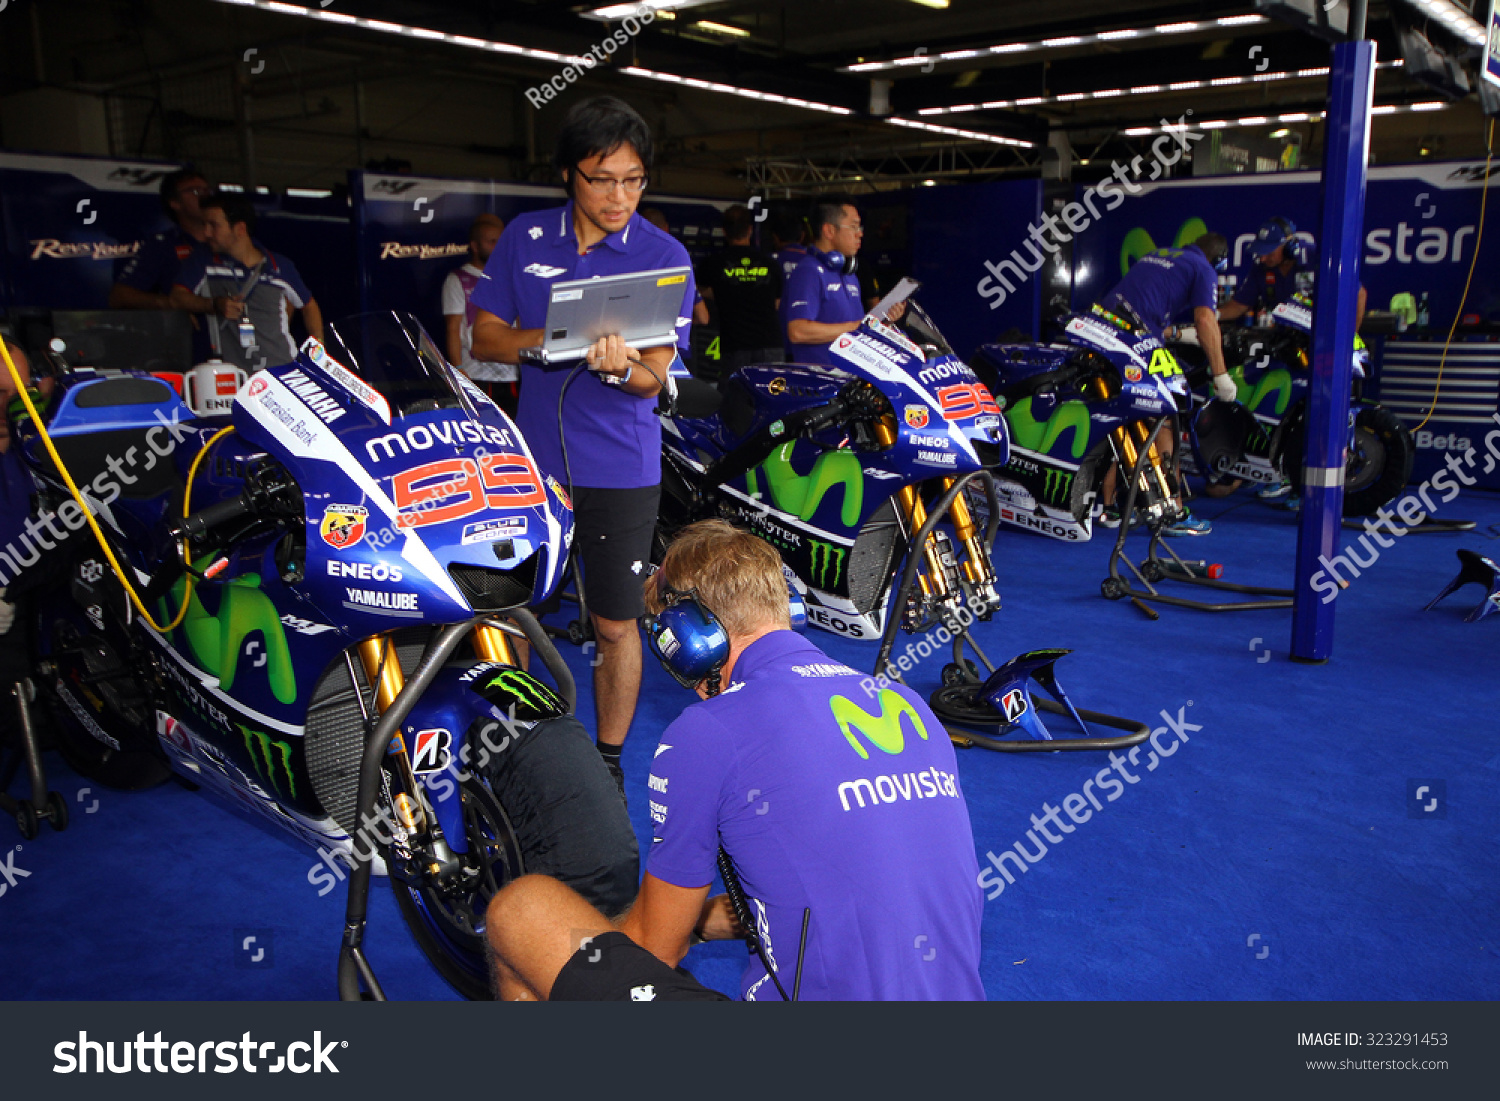 Garage Yamaha Brno Czech Republic August 14 Yamaha Stock Photo Edit Now